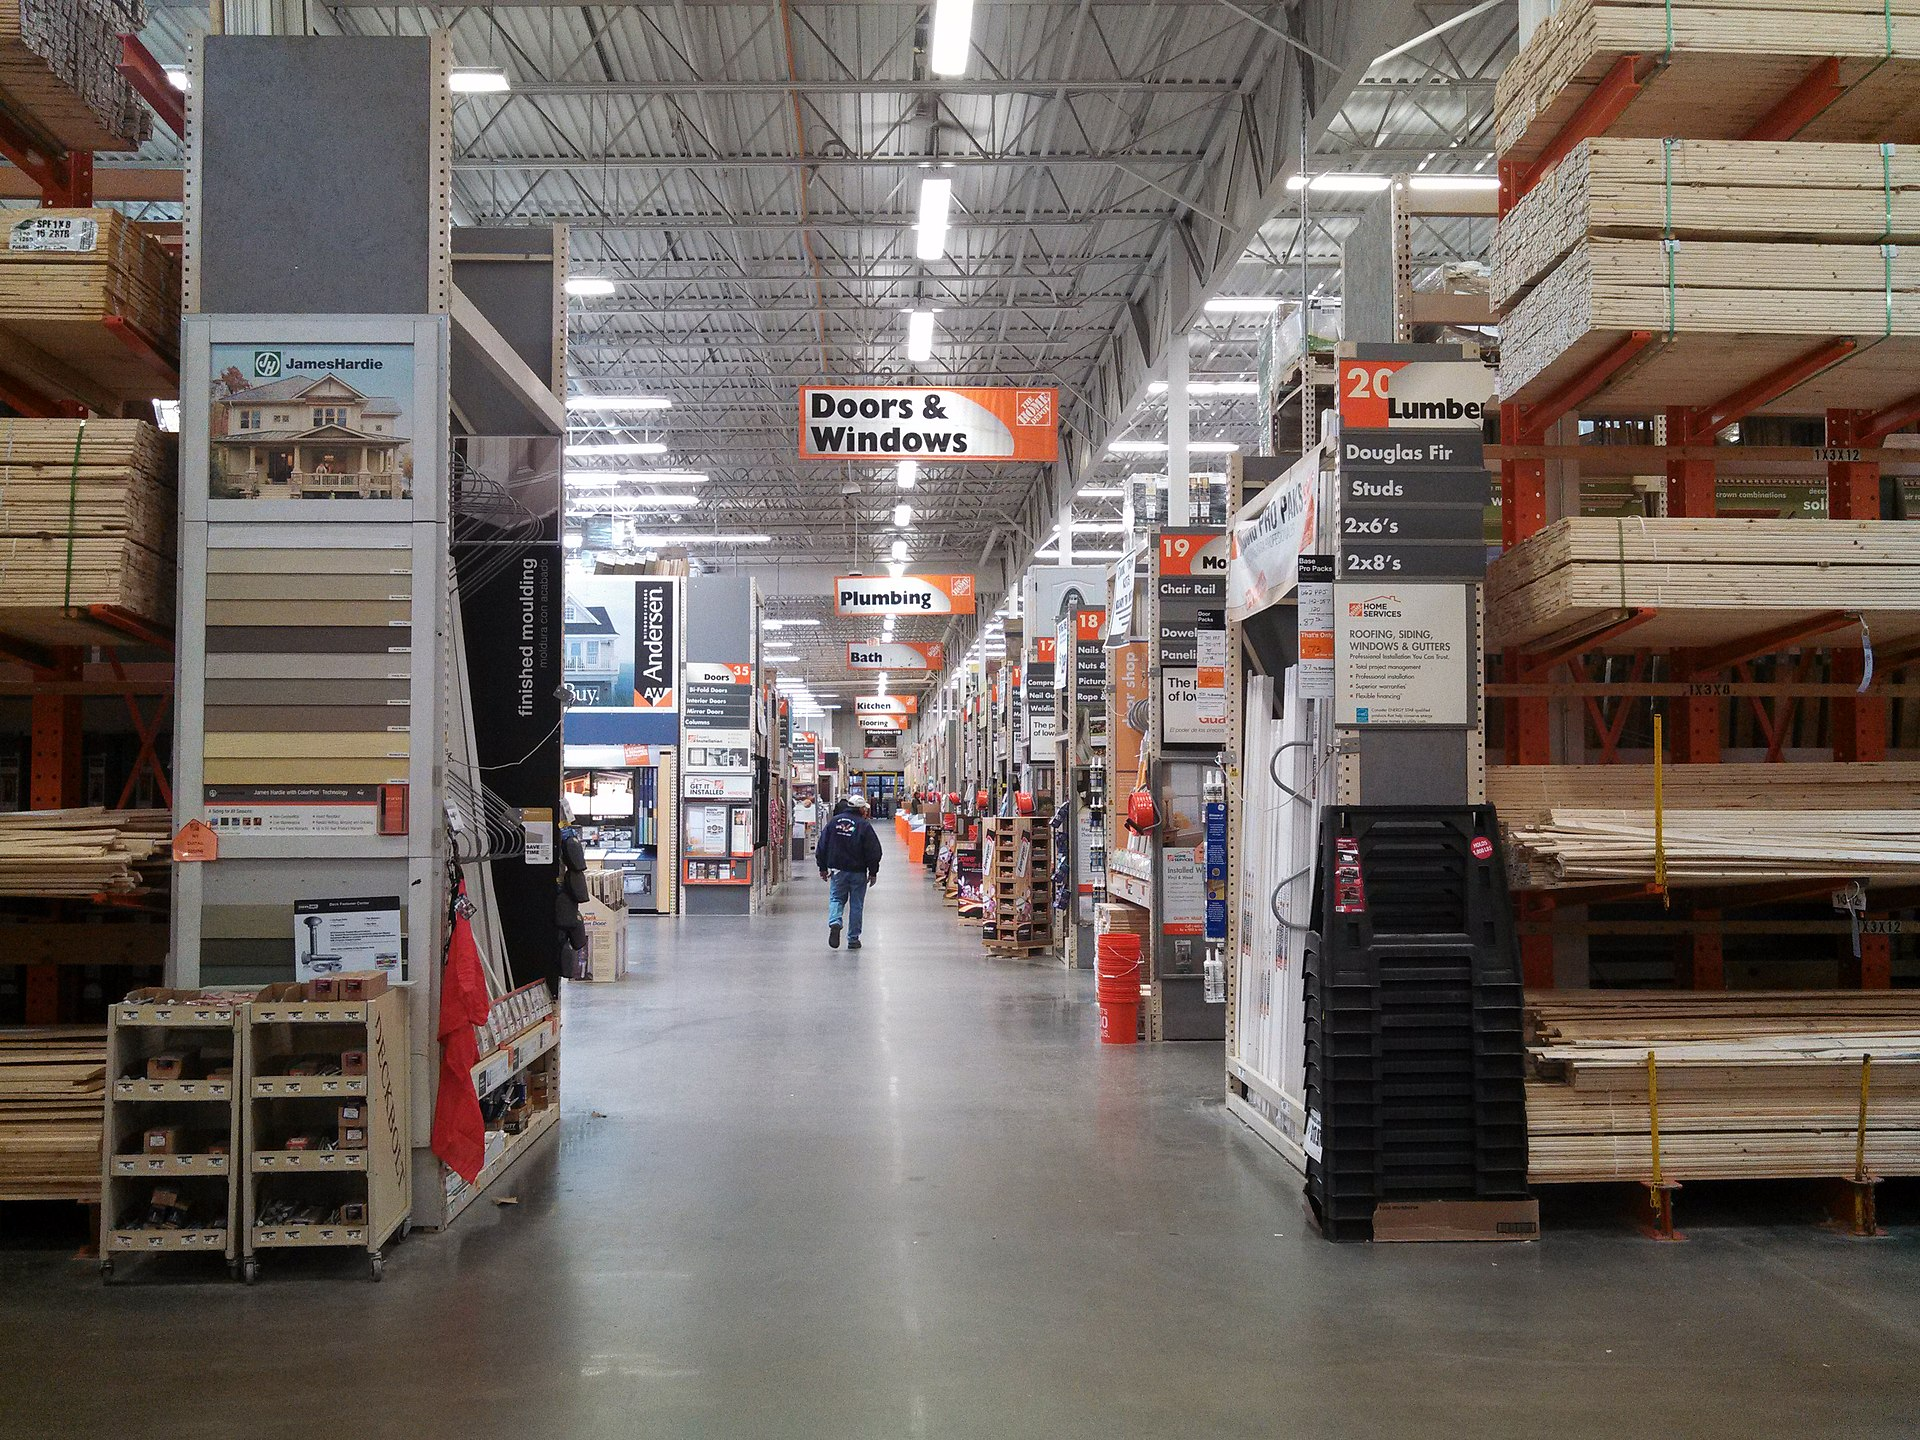 Home Depot - Simple English Wikipedia, the free encyclopedia